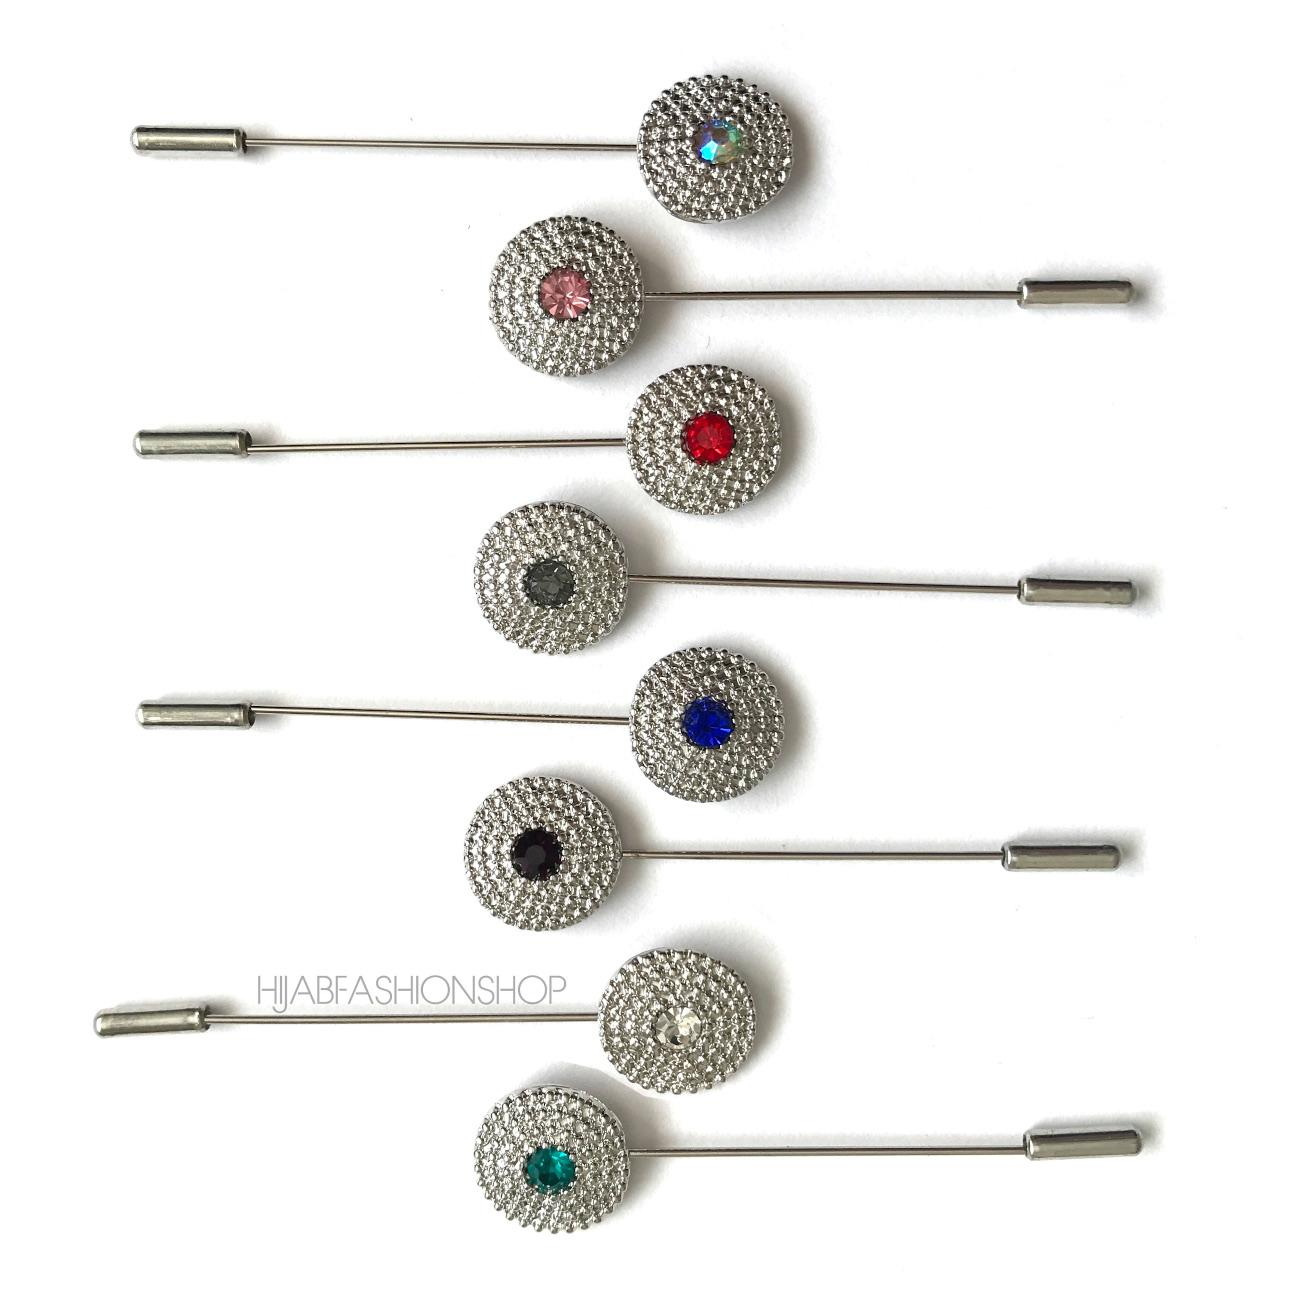 8 silver coin hijab pins with different coloured crystals in the middle